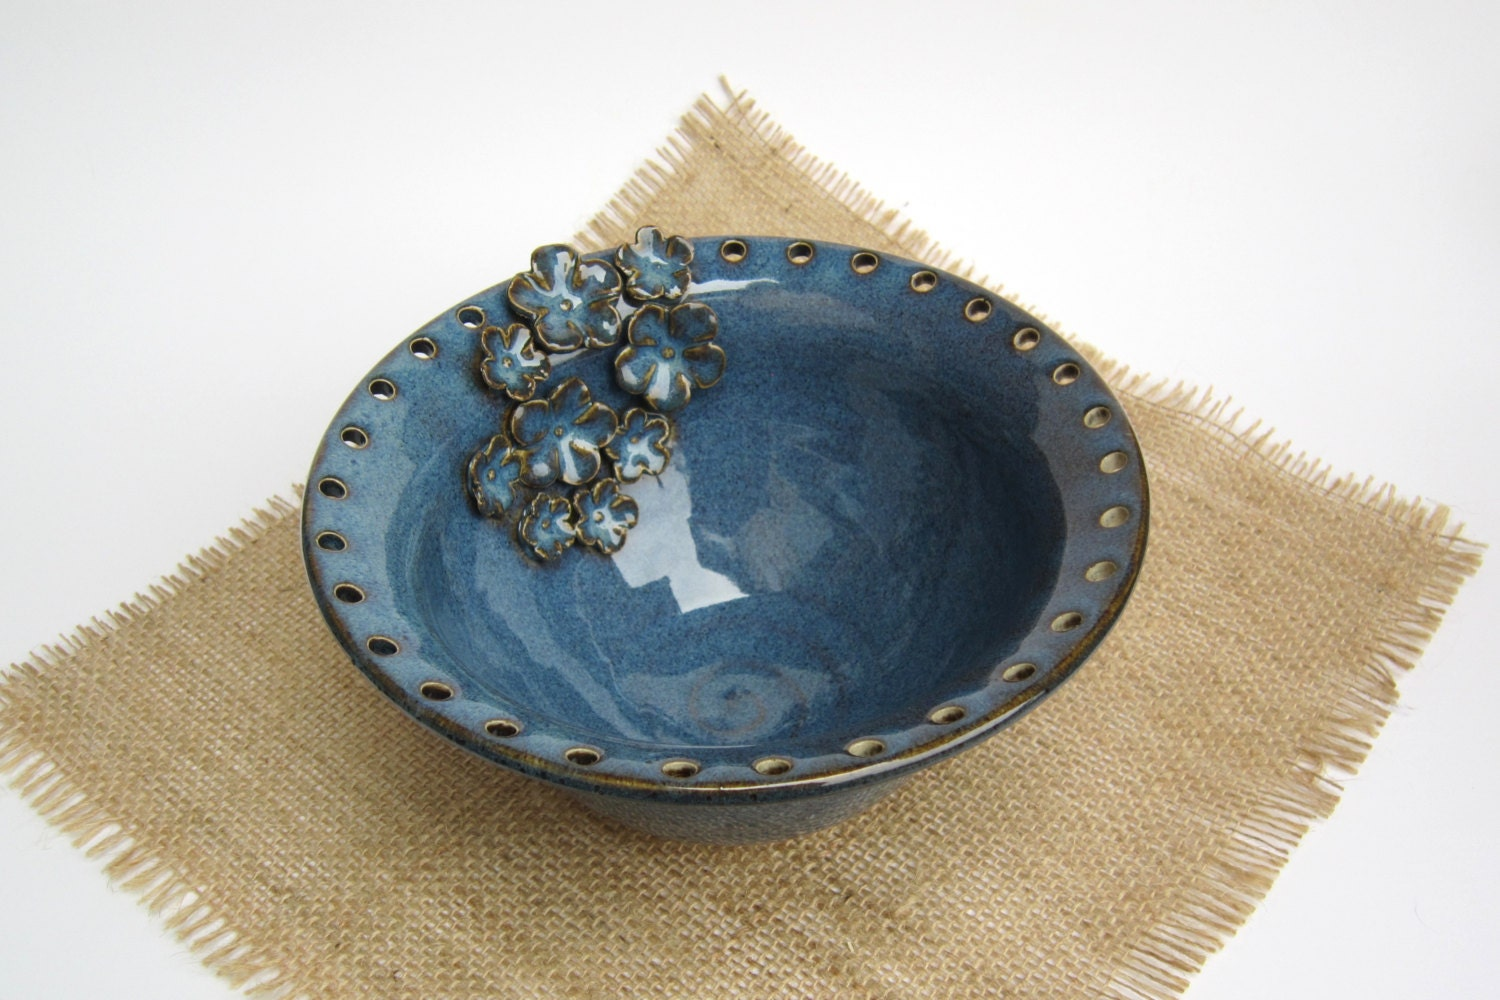 Blue Jewelry Bowl Earring Holder By Laurawilson2 On Etsy